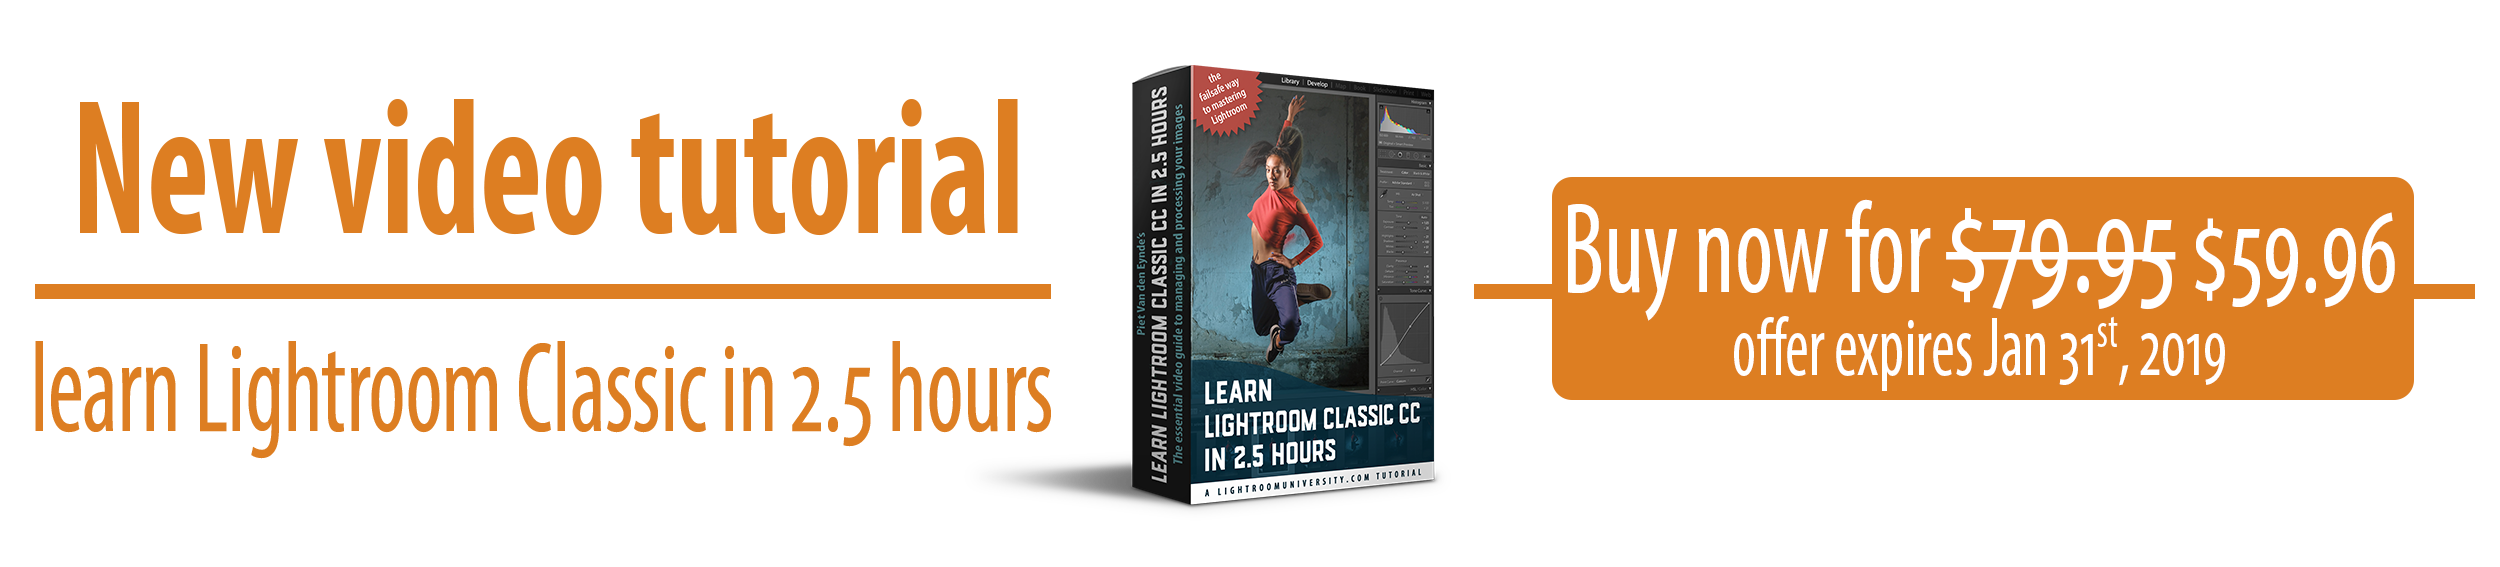 LearnLightroomClassic Banner - Buy Now.png